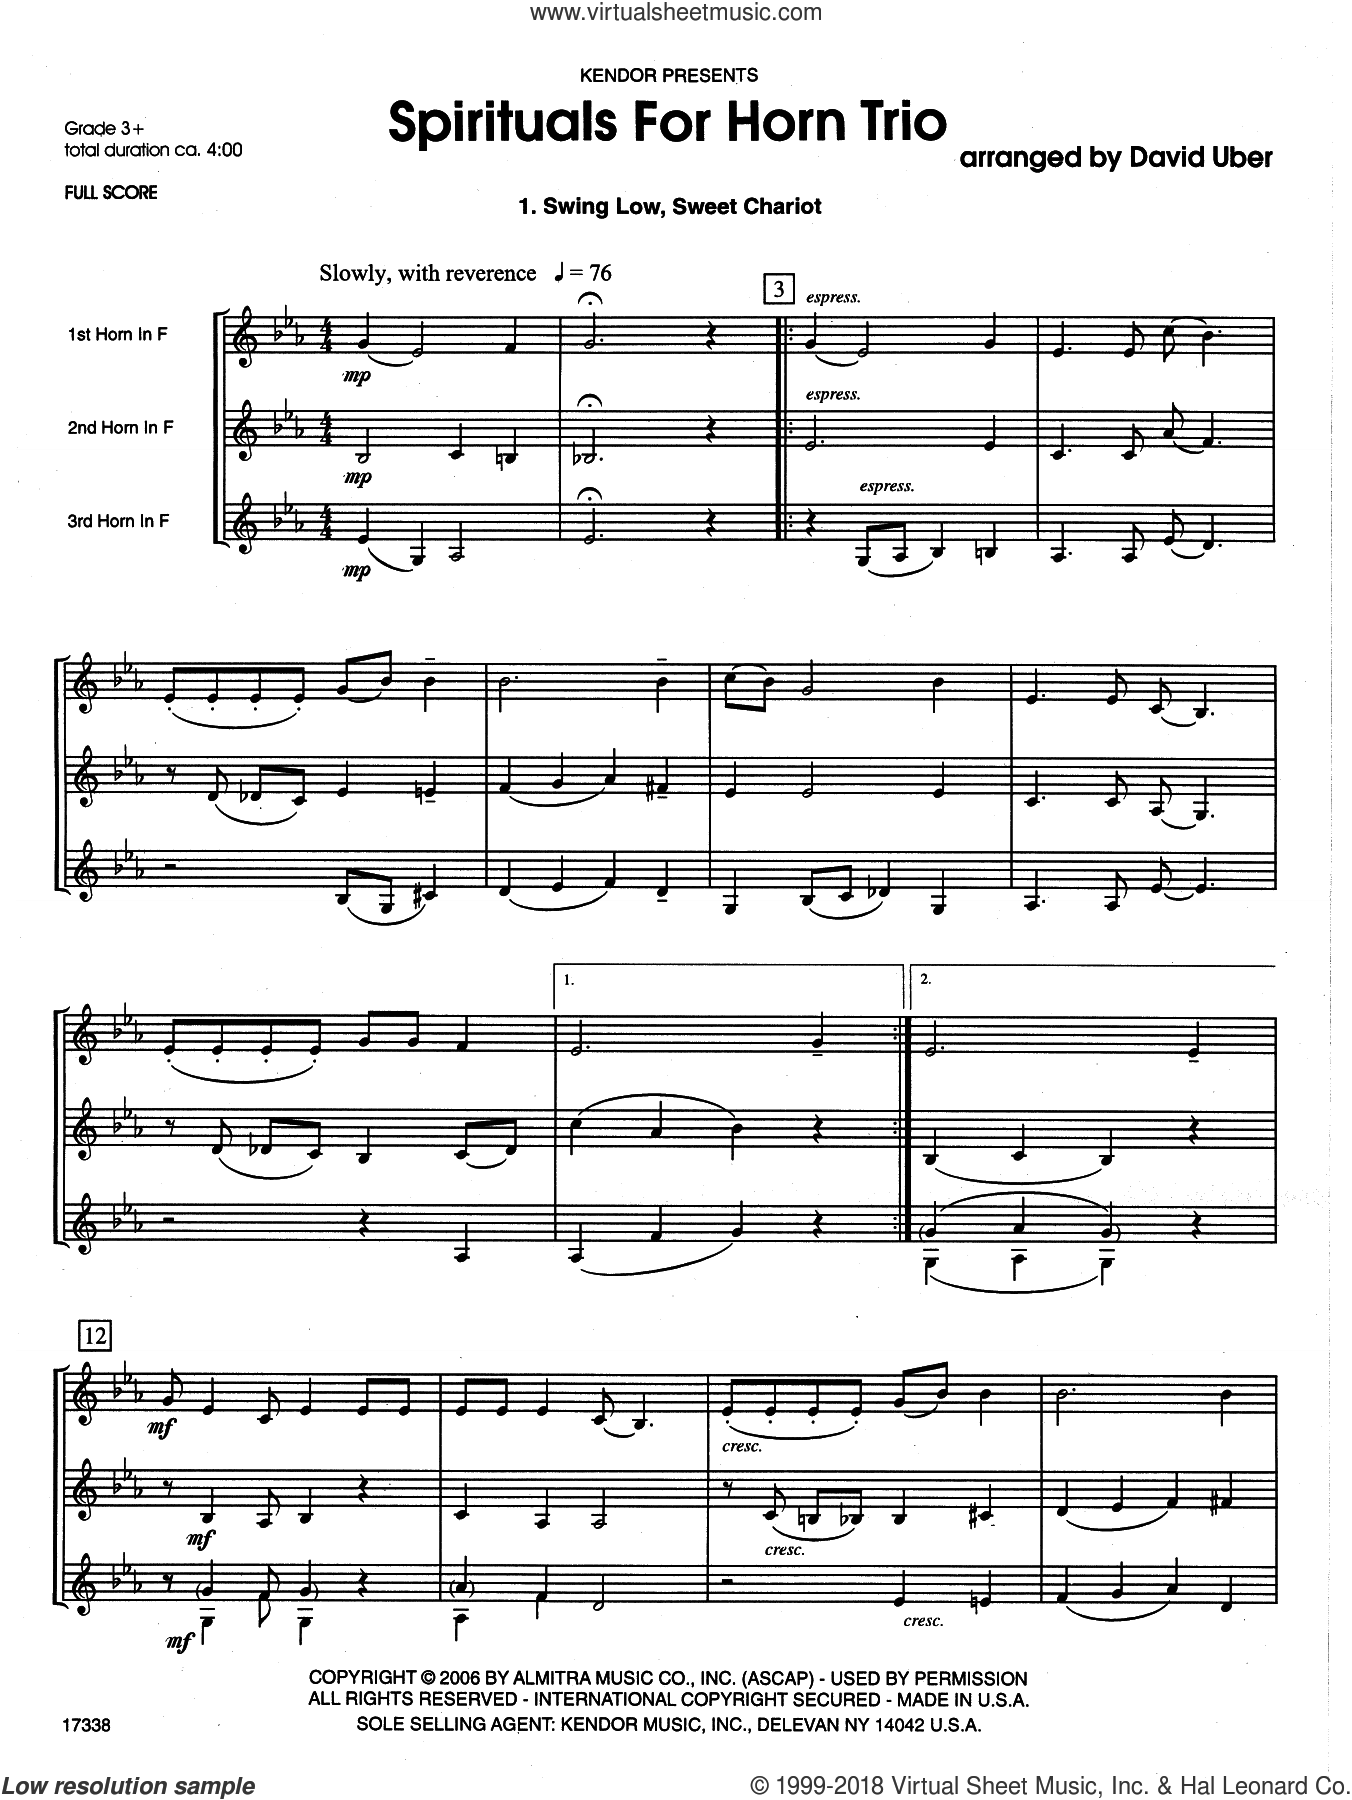 Spirituals For Horn Trio sheet music for horn trio (full score) by David Uber